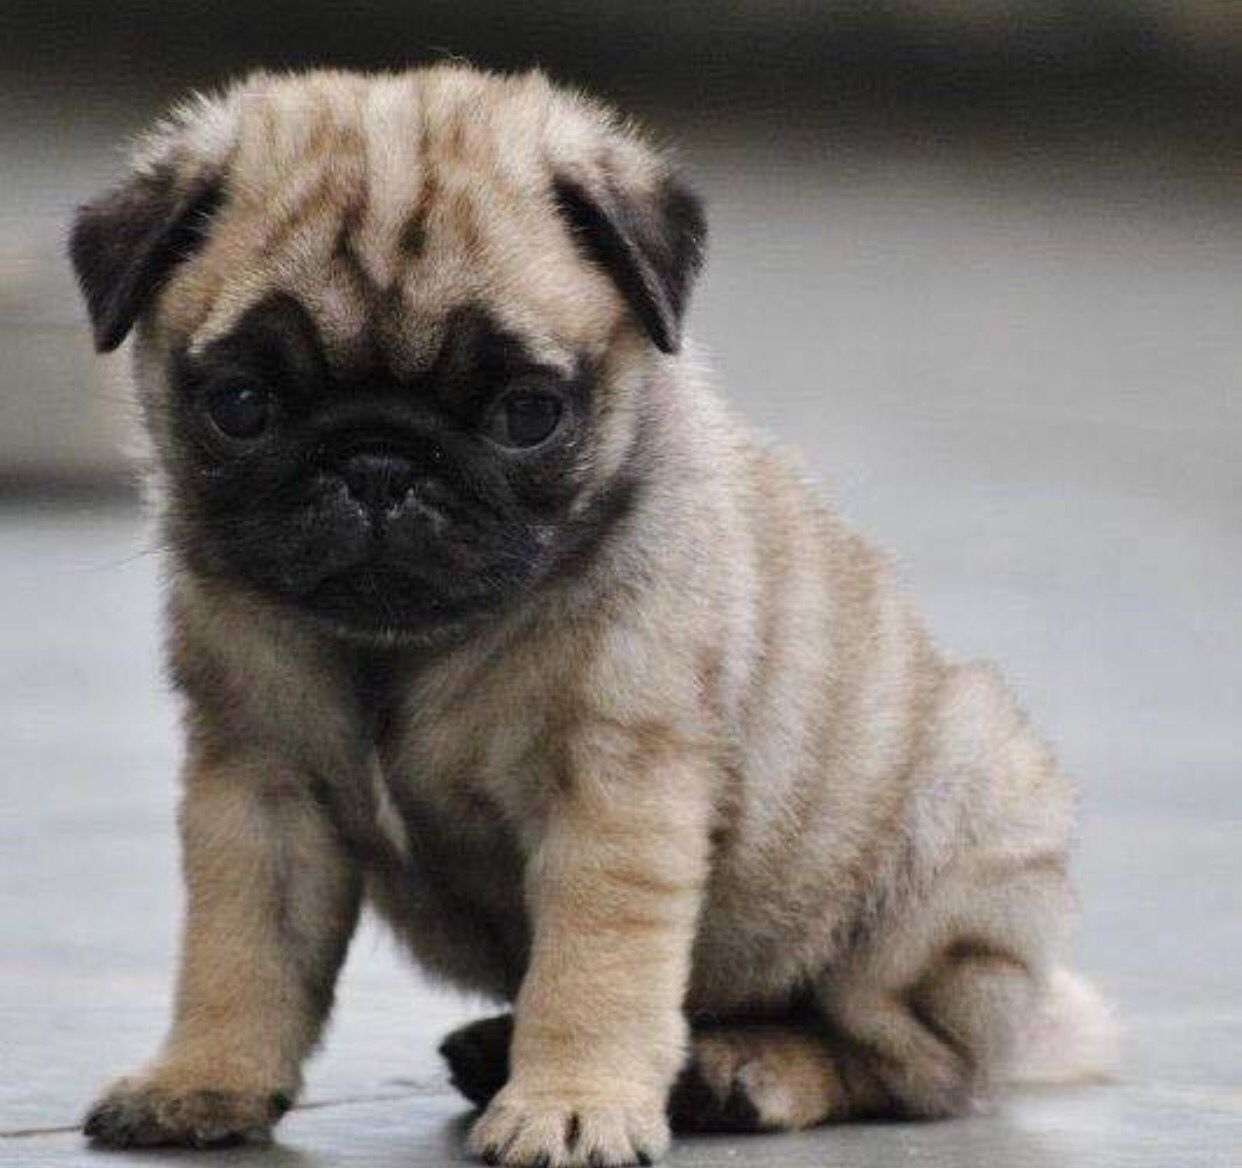 Pug baby | Pugs - hurts so good. | Pinterest | Süße welpen, Hunde ...